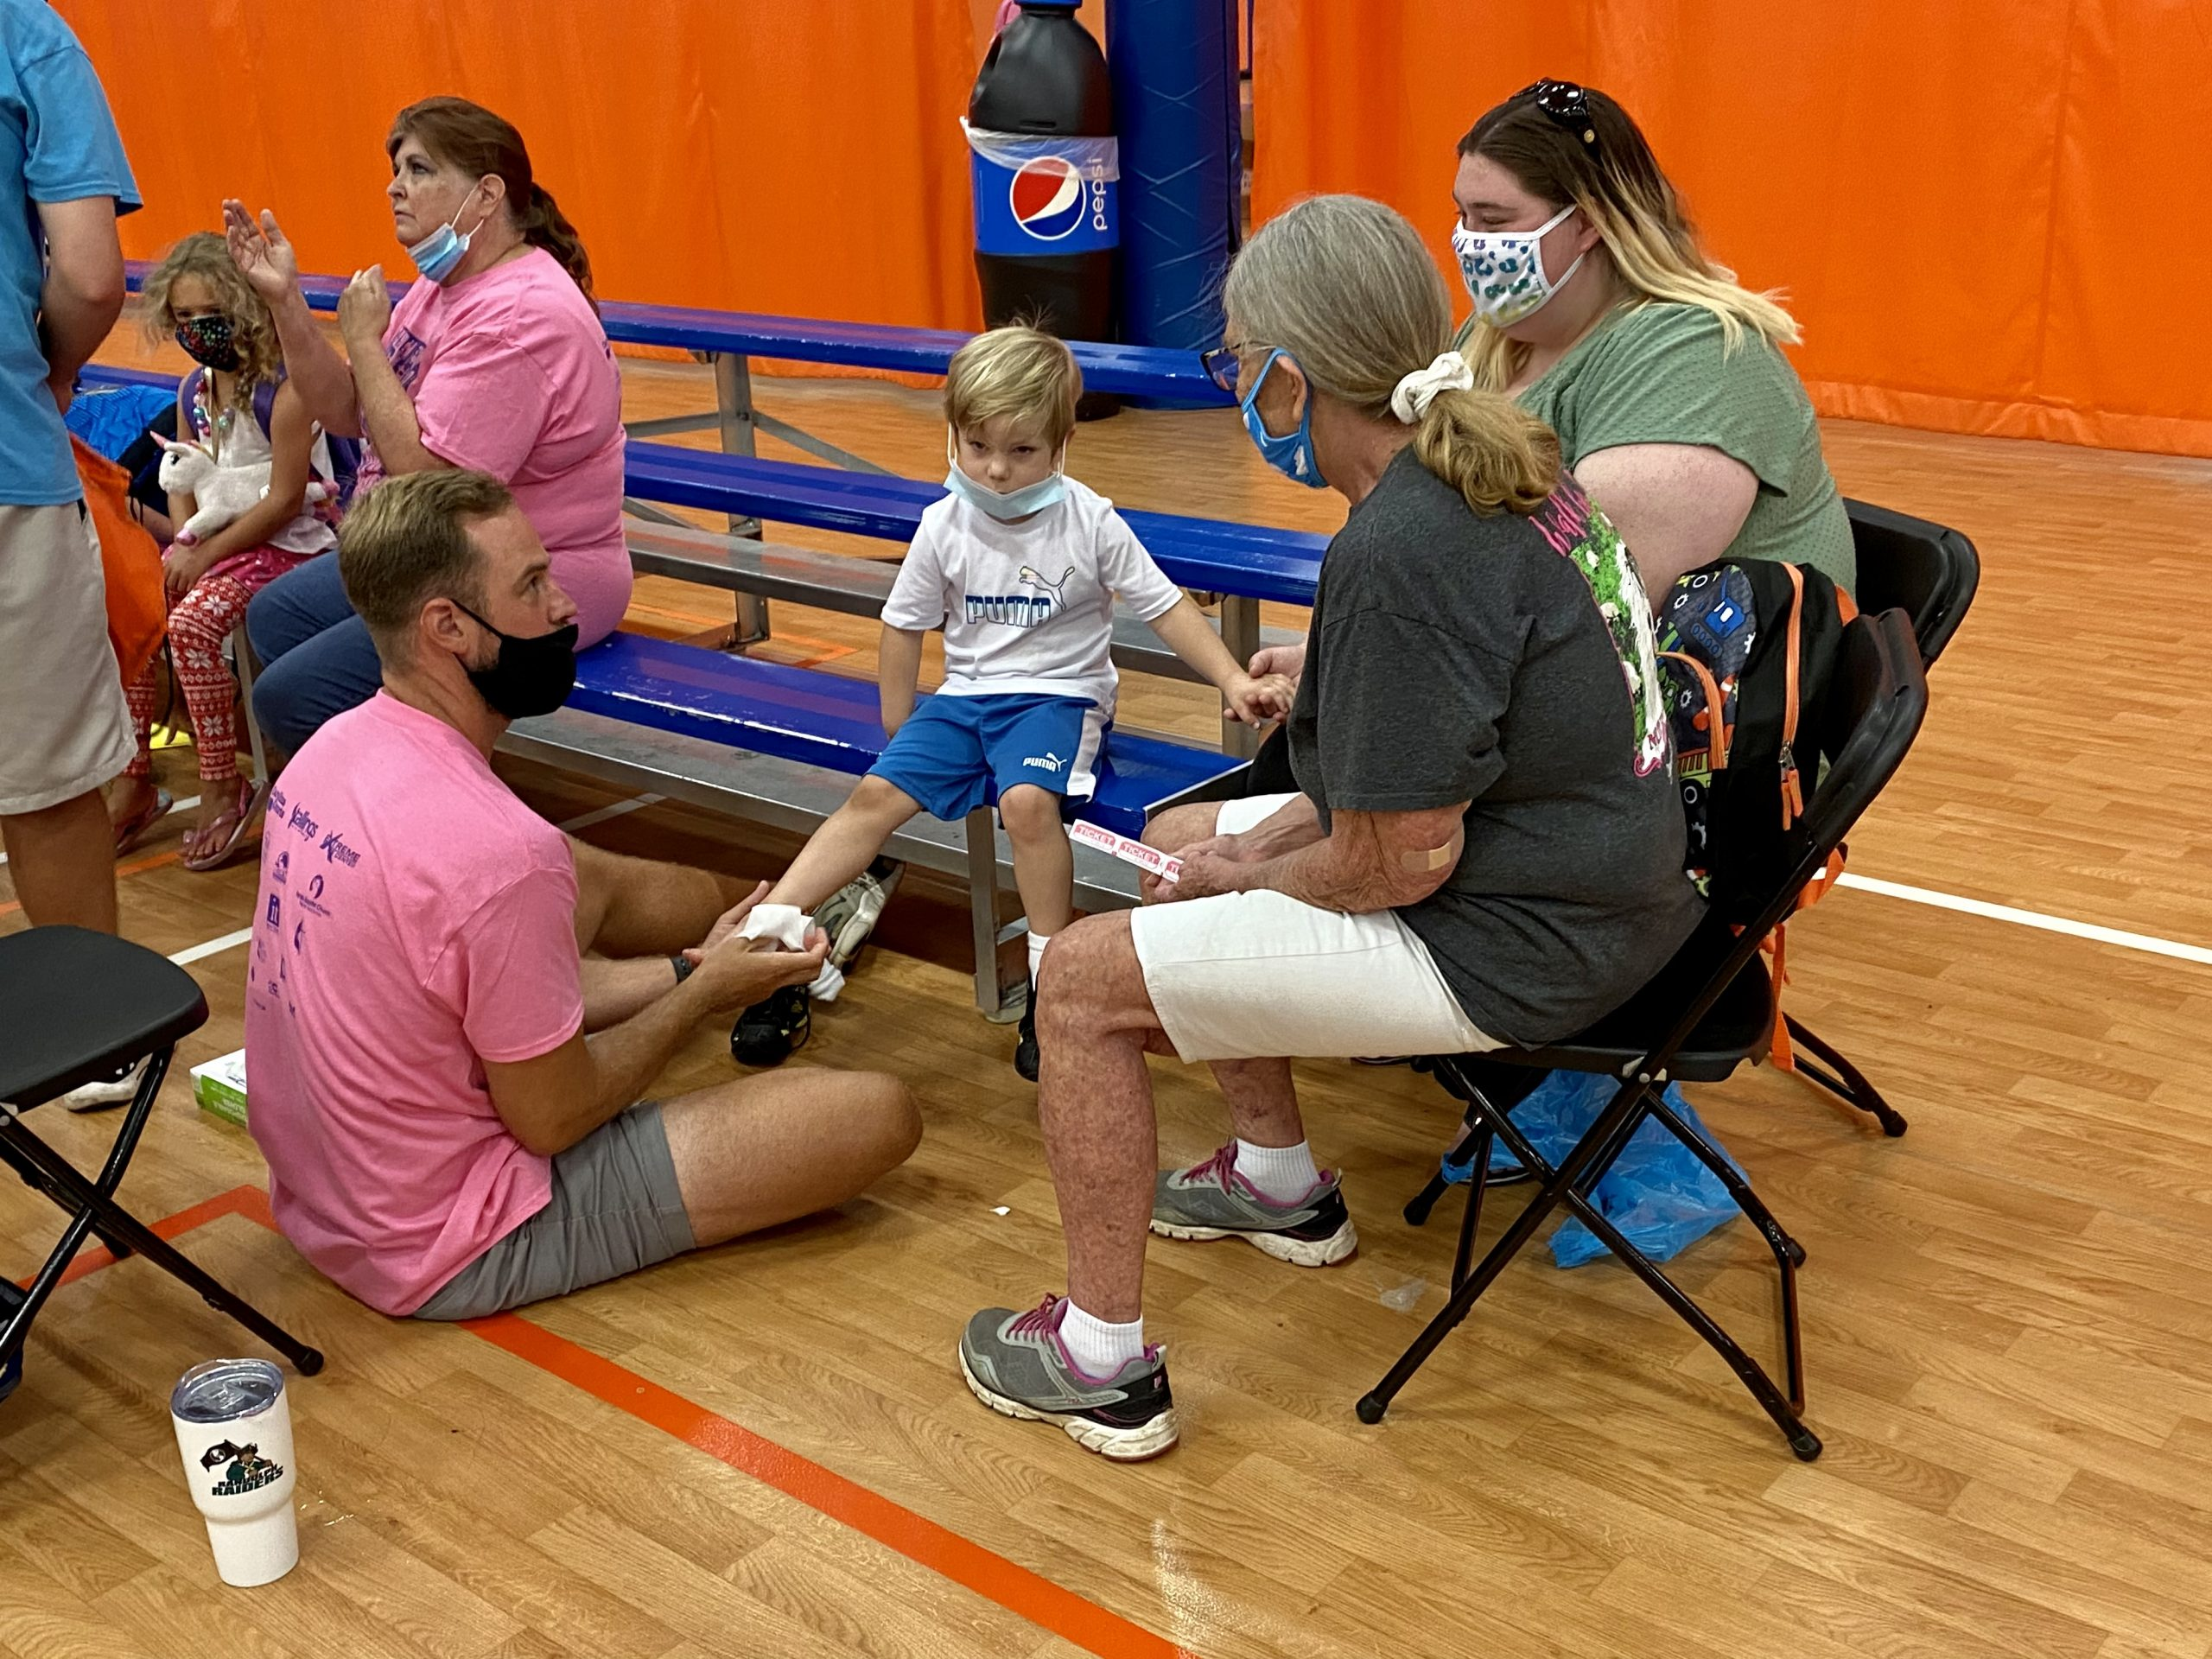 A volunteer cleans a child's foot before sizing him for sneakers on Aug 14, 2021.